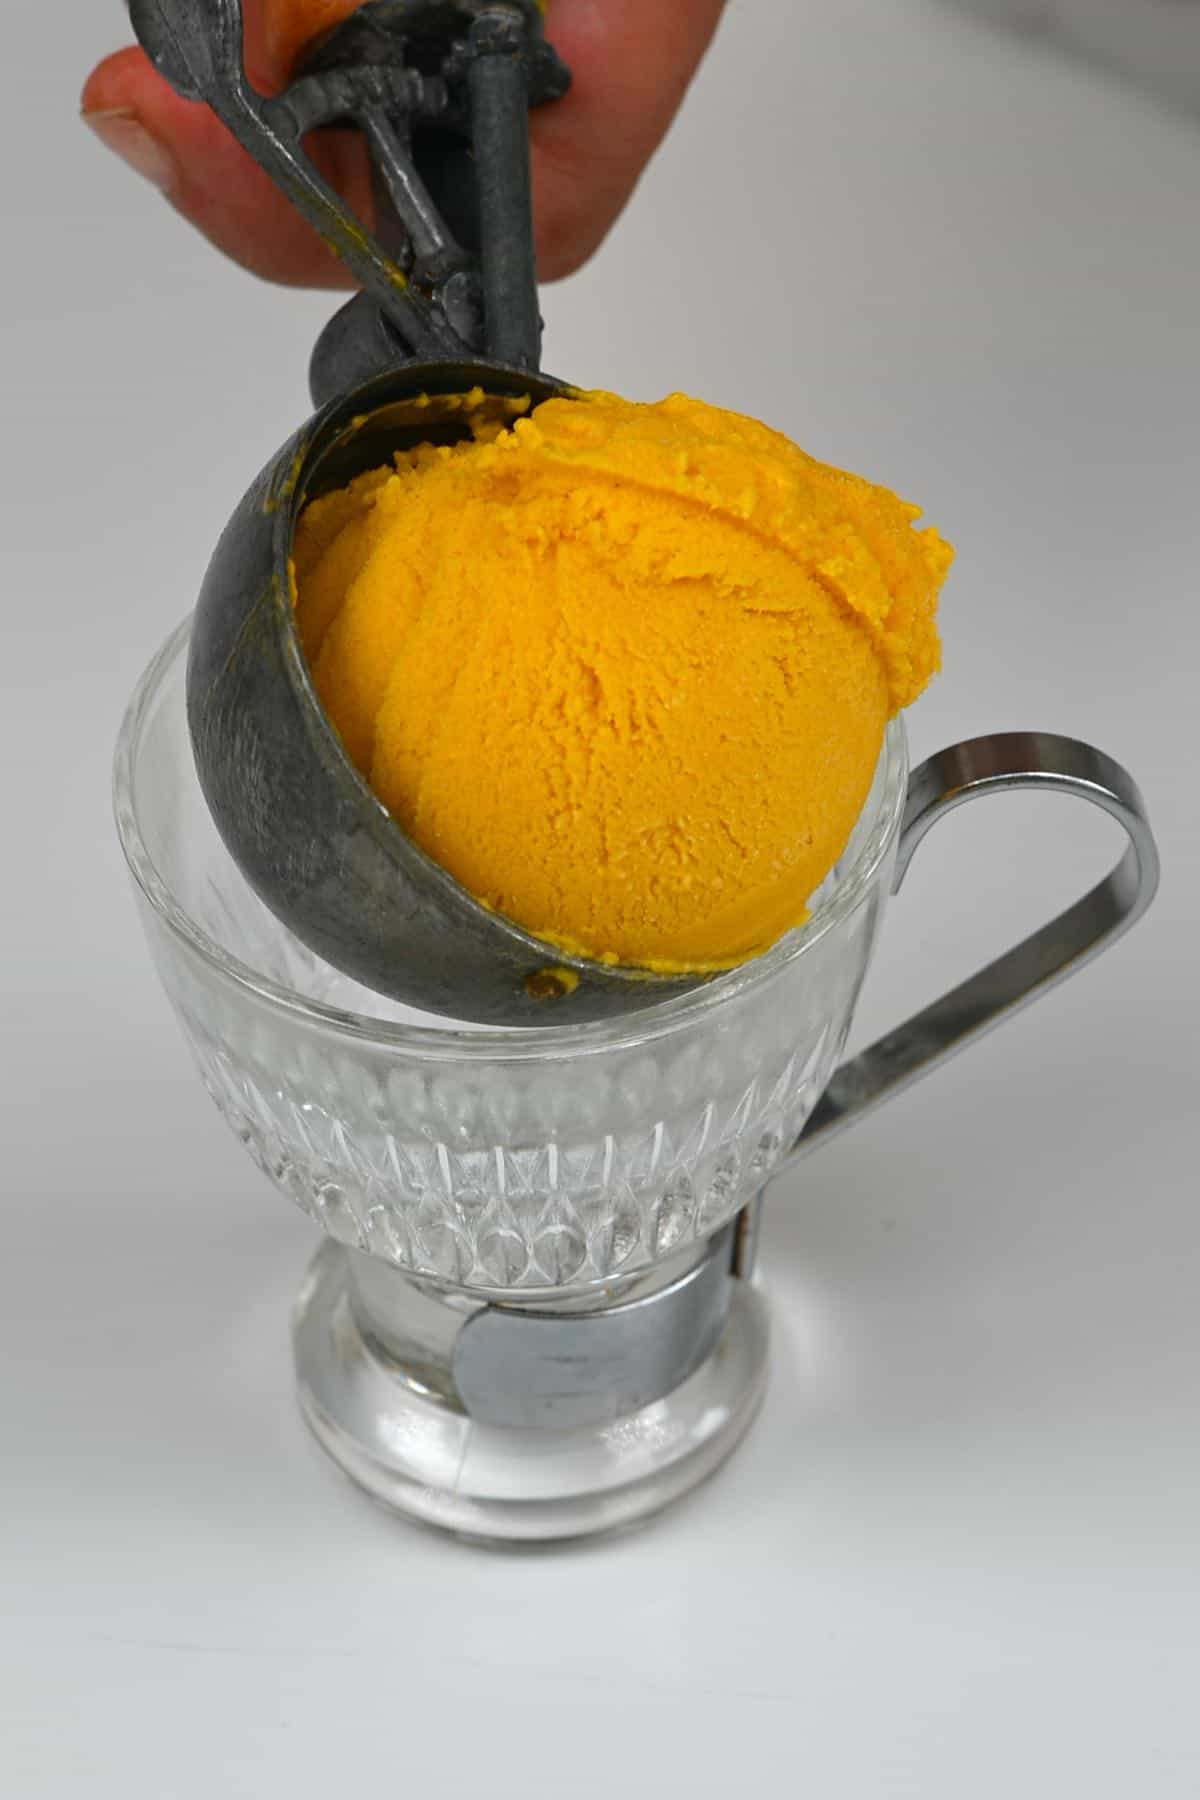 A scoop of mango ice cream being placed in a cup